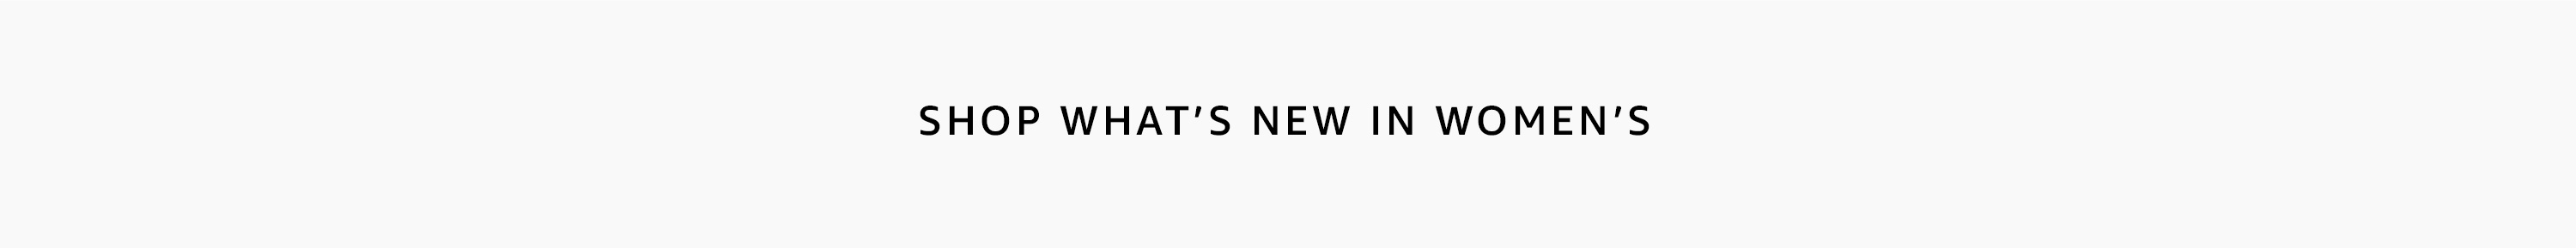 Shop what's new in women's